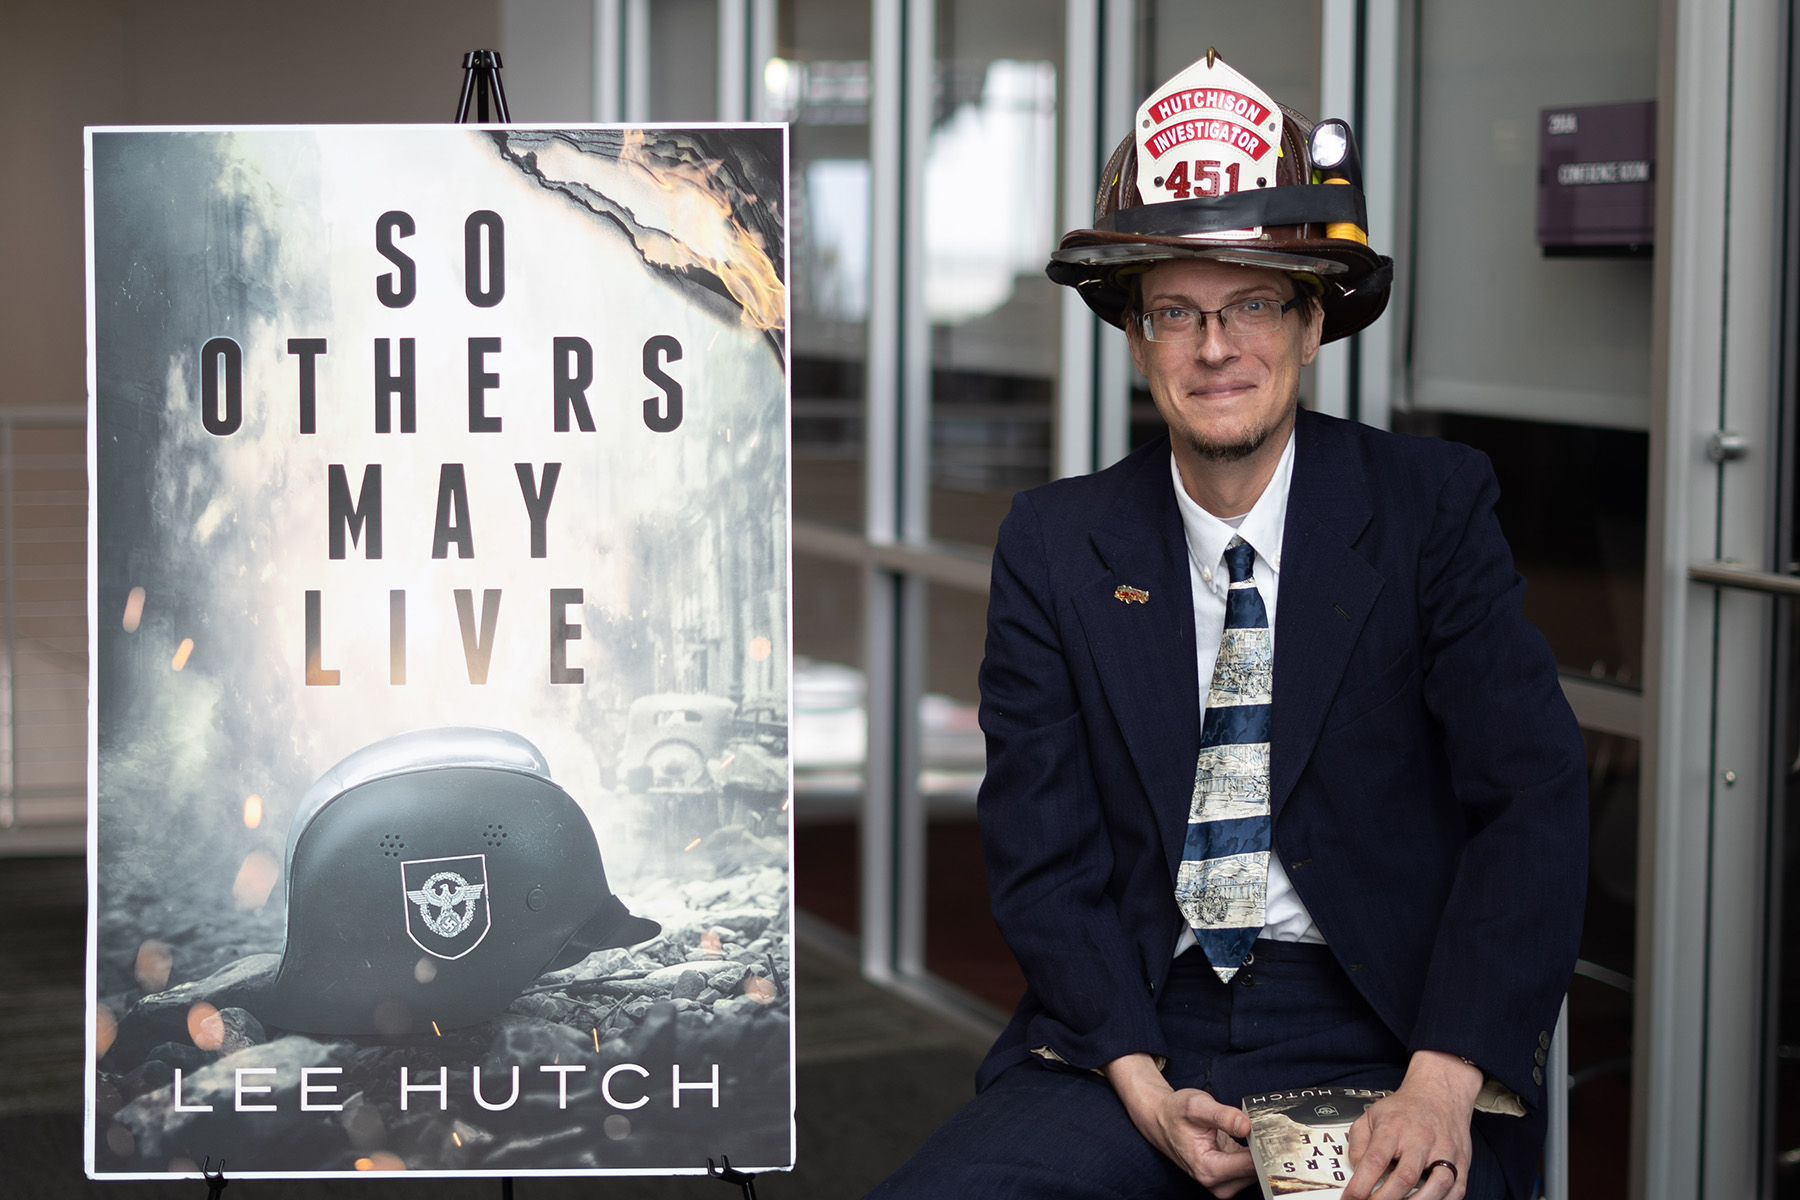 SO OTHERS MAY LIVE - WCJC's Hutchison publishes first novel